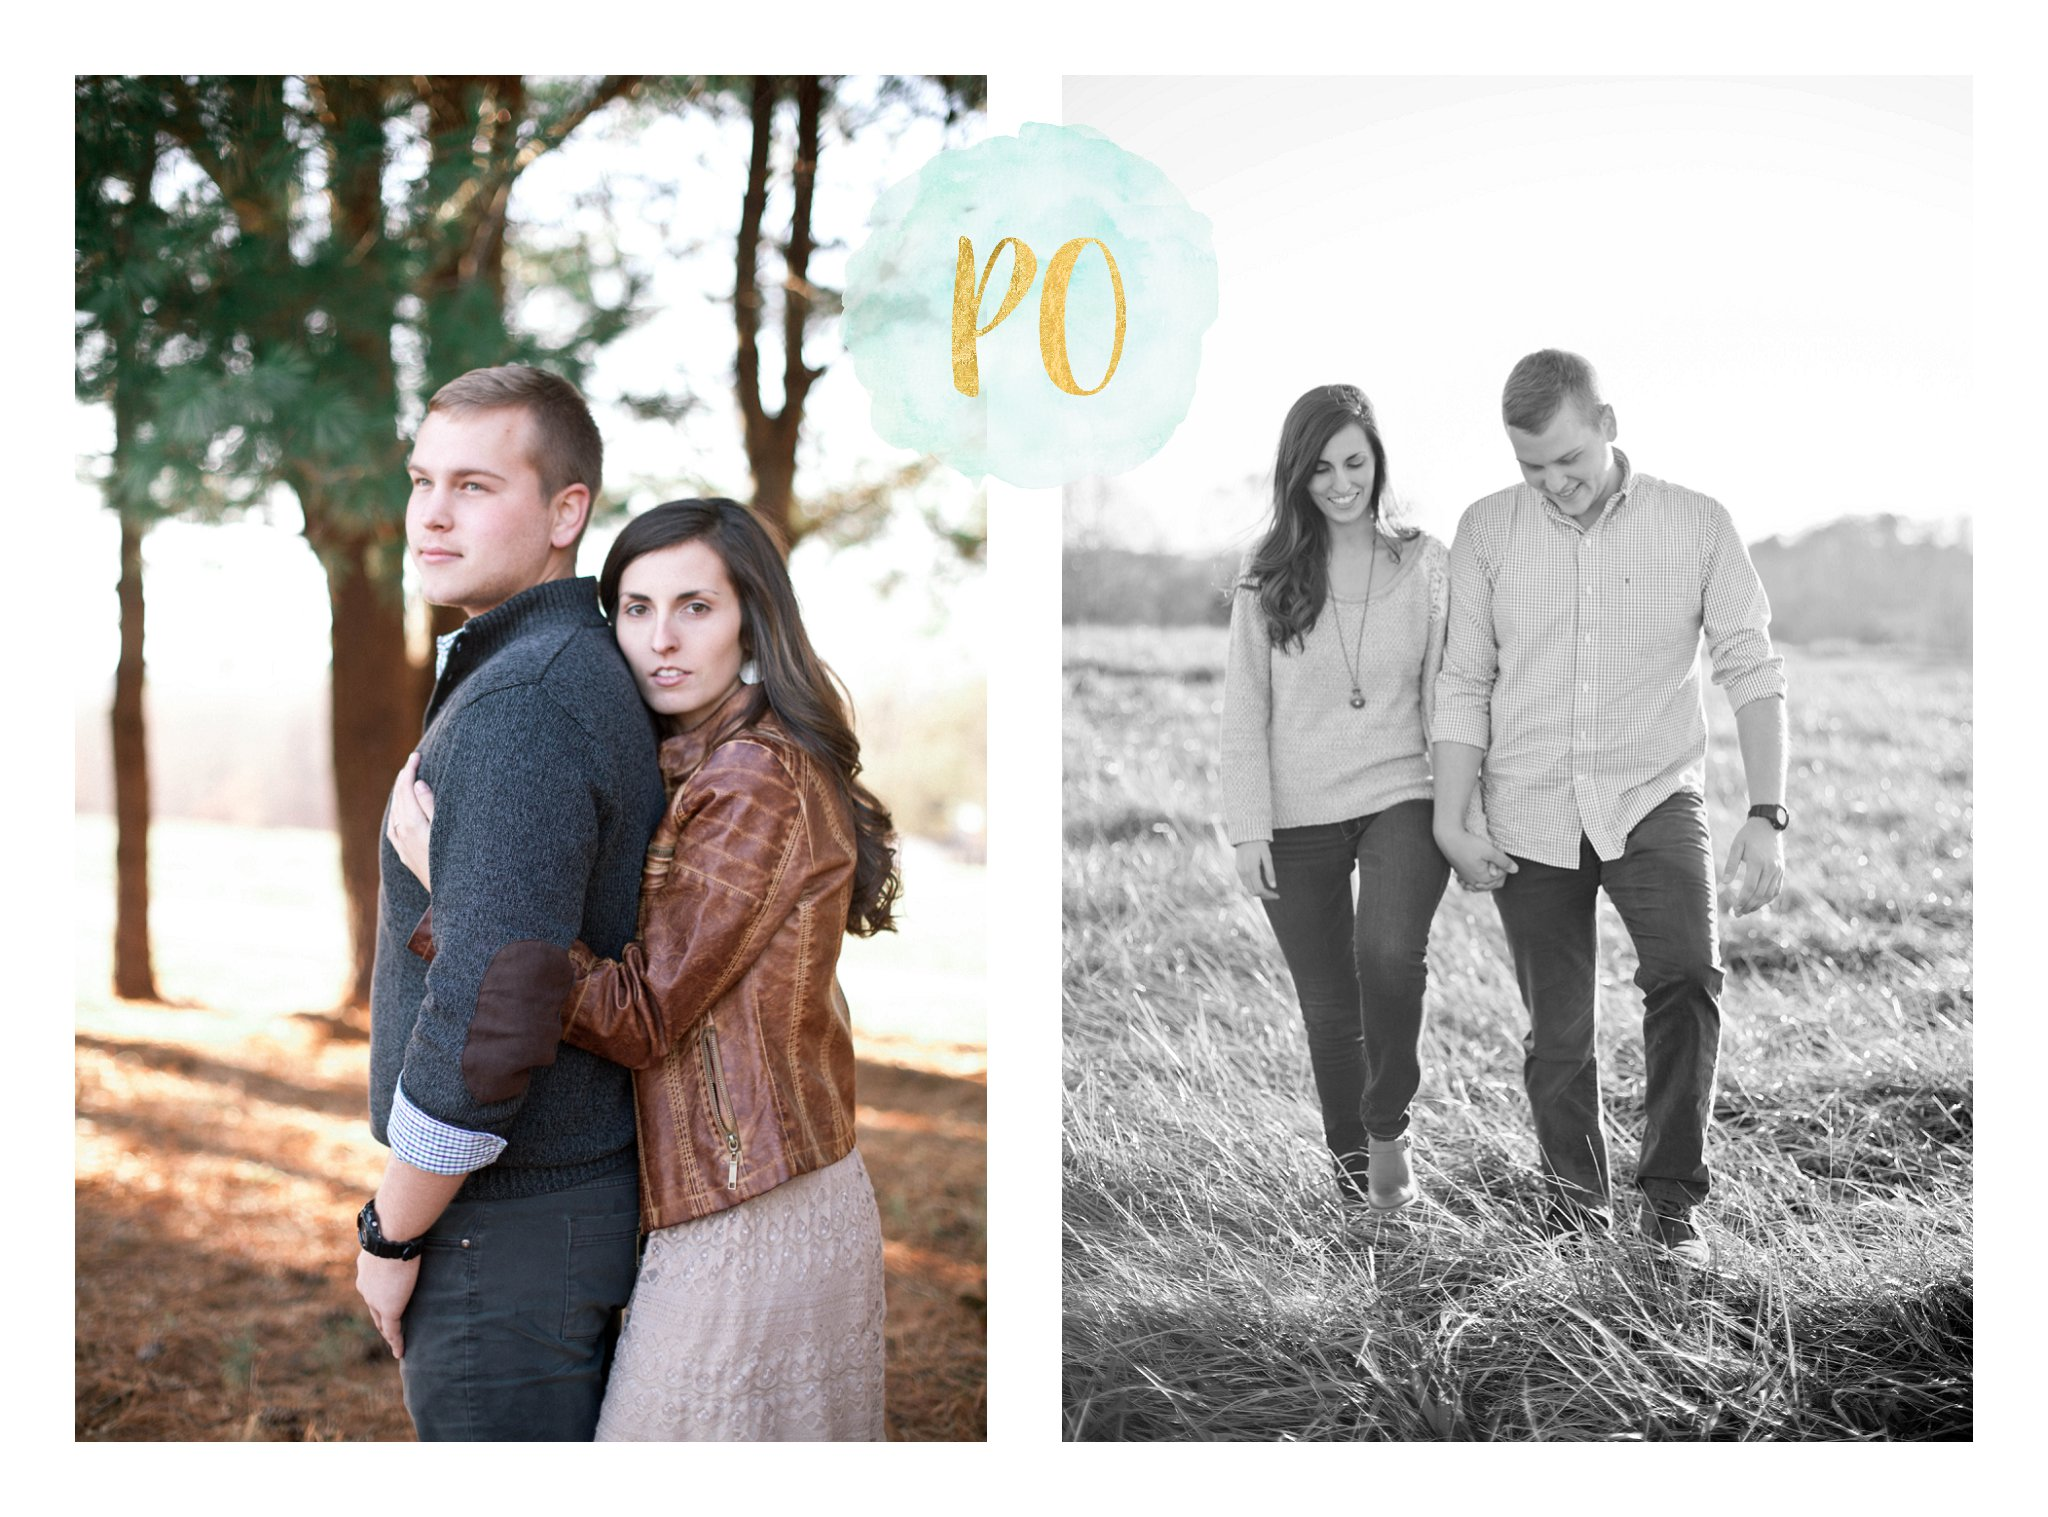 lindsey plantation, outdoor, engagement, field, poured out photography